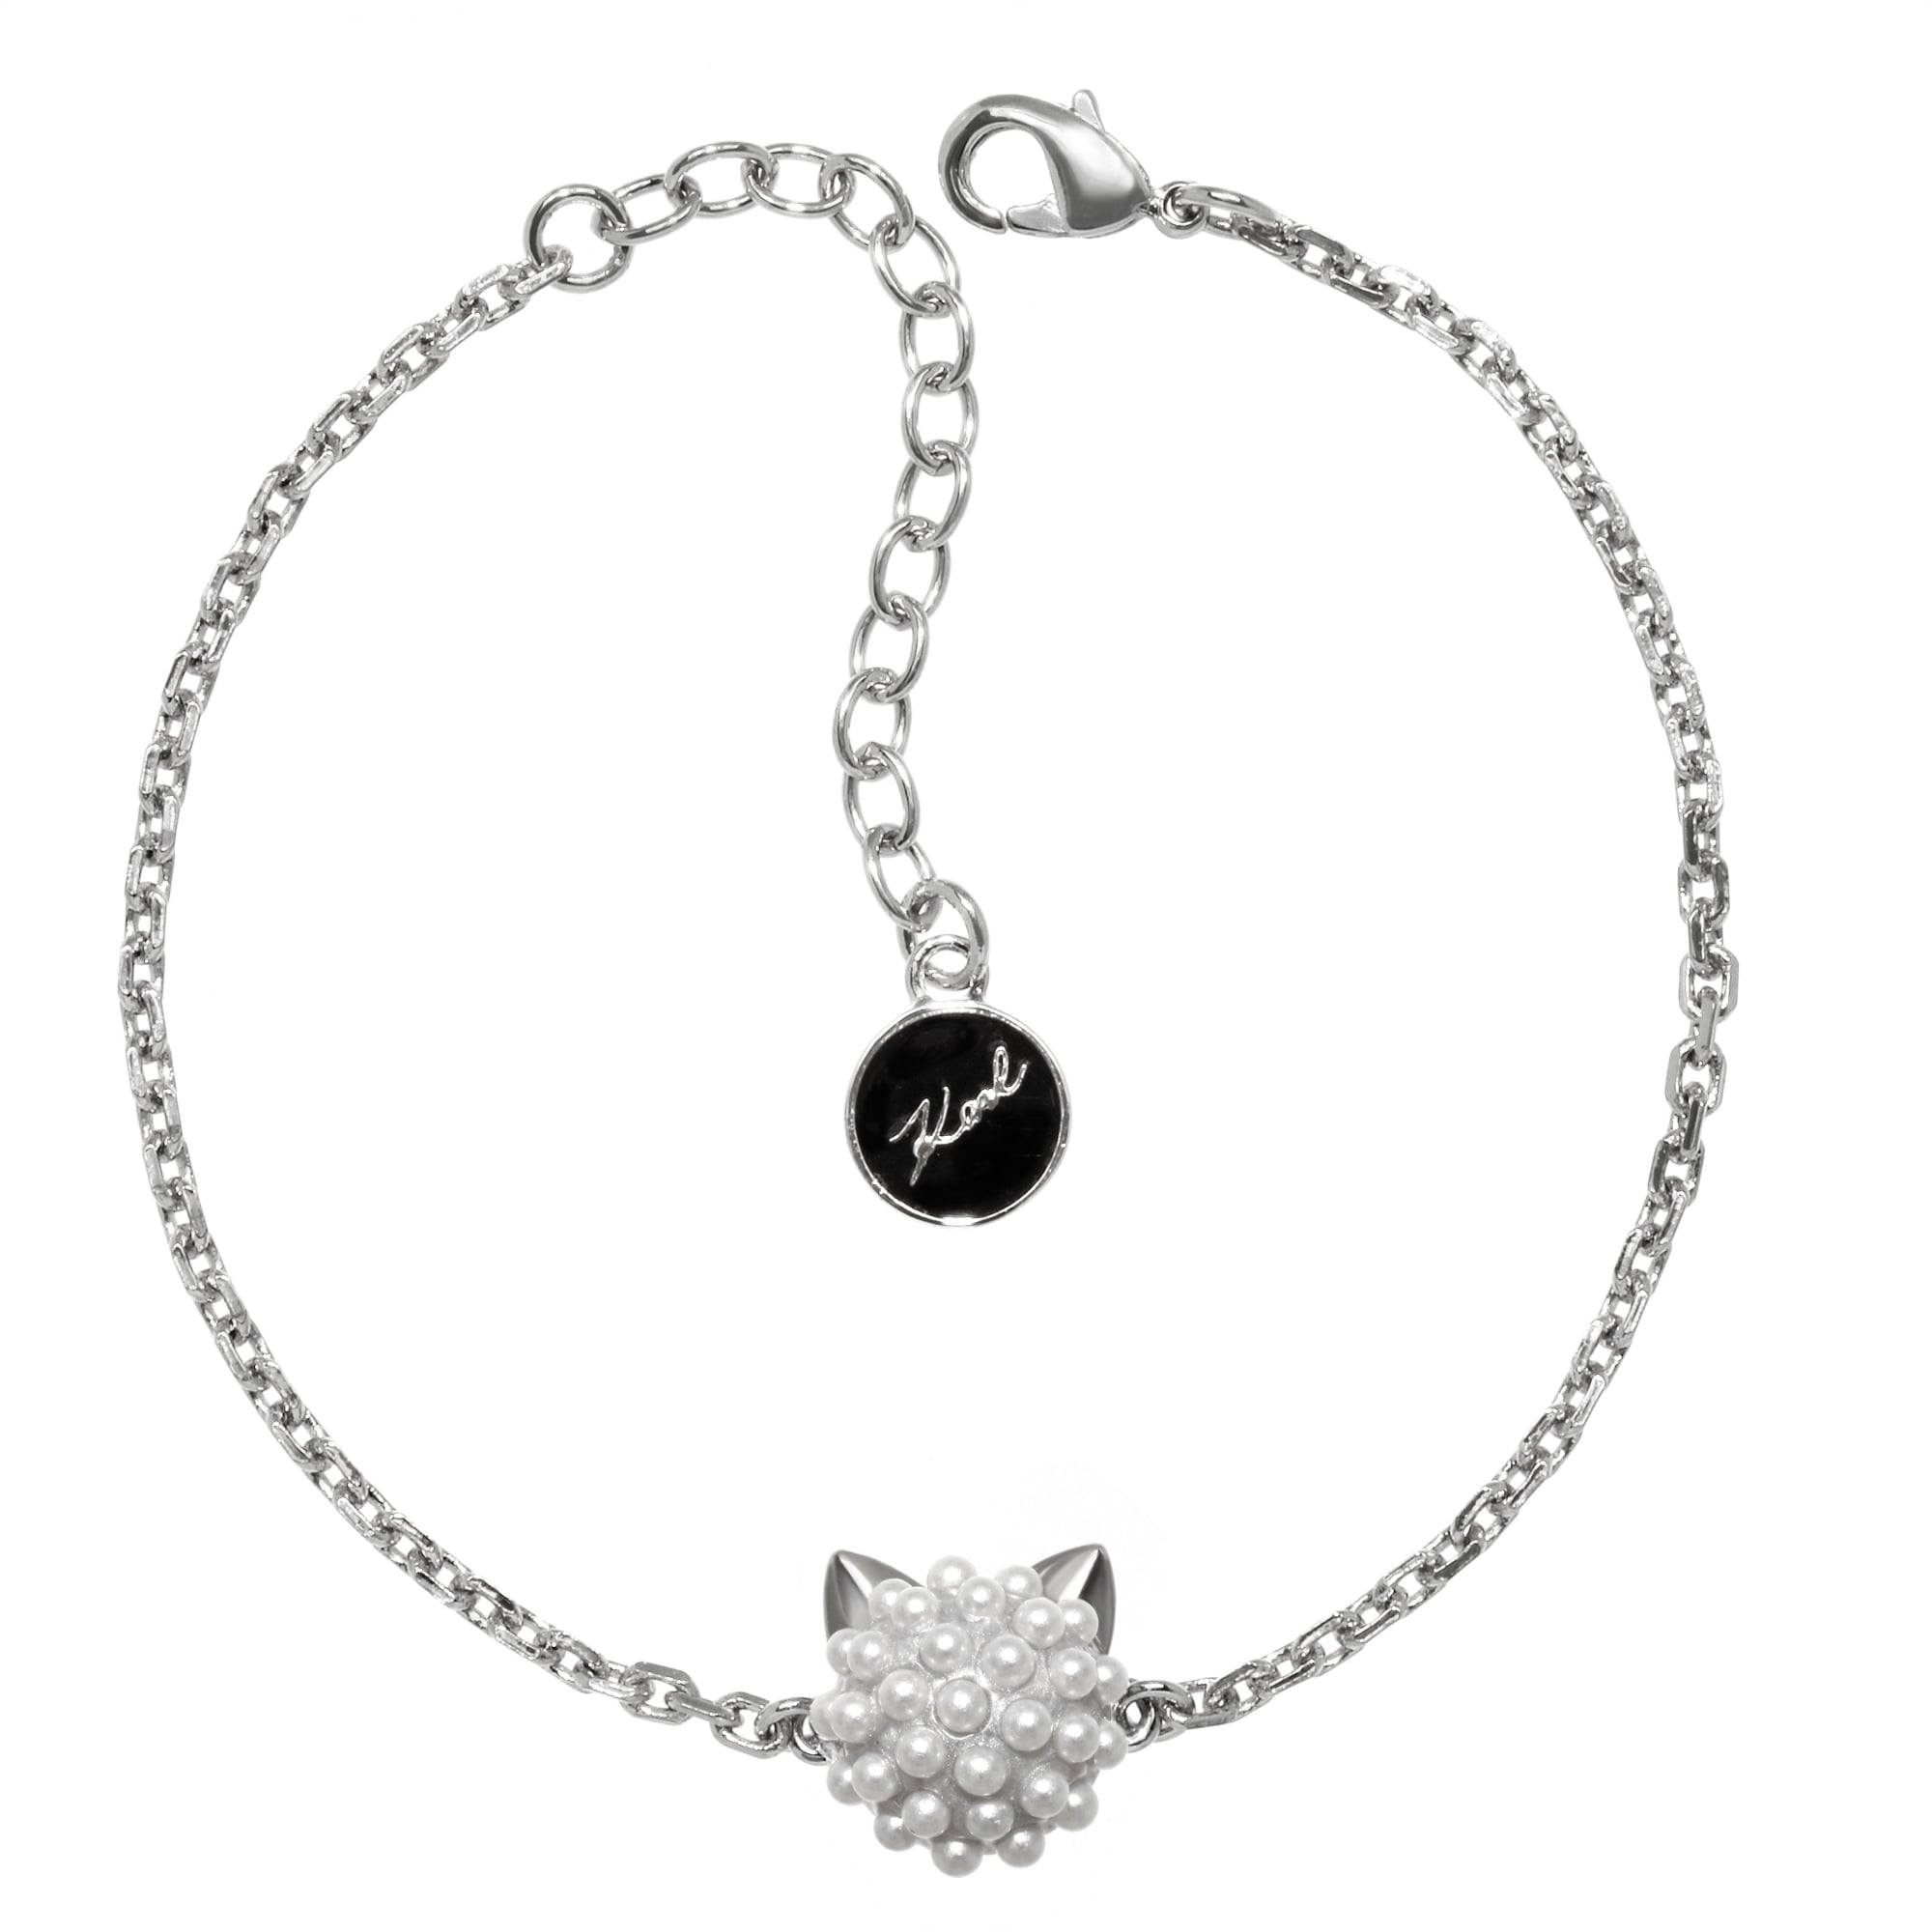 Karl Lagerfeld Silver Pearl Choupette Cat Bracelet Created With Swarovski Crystals